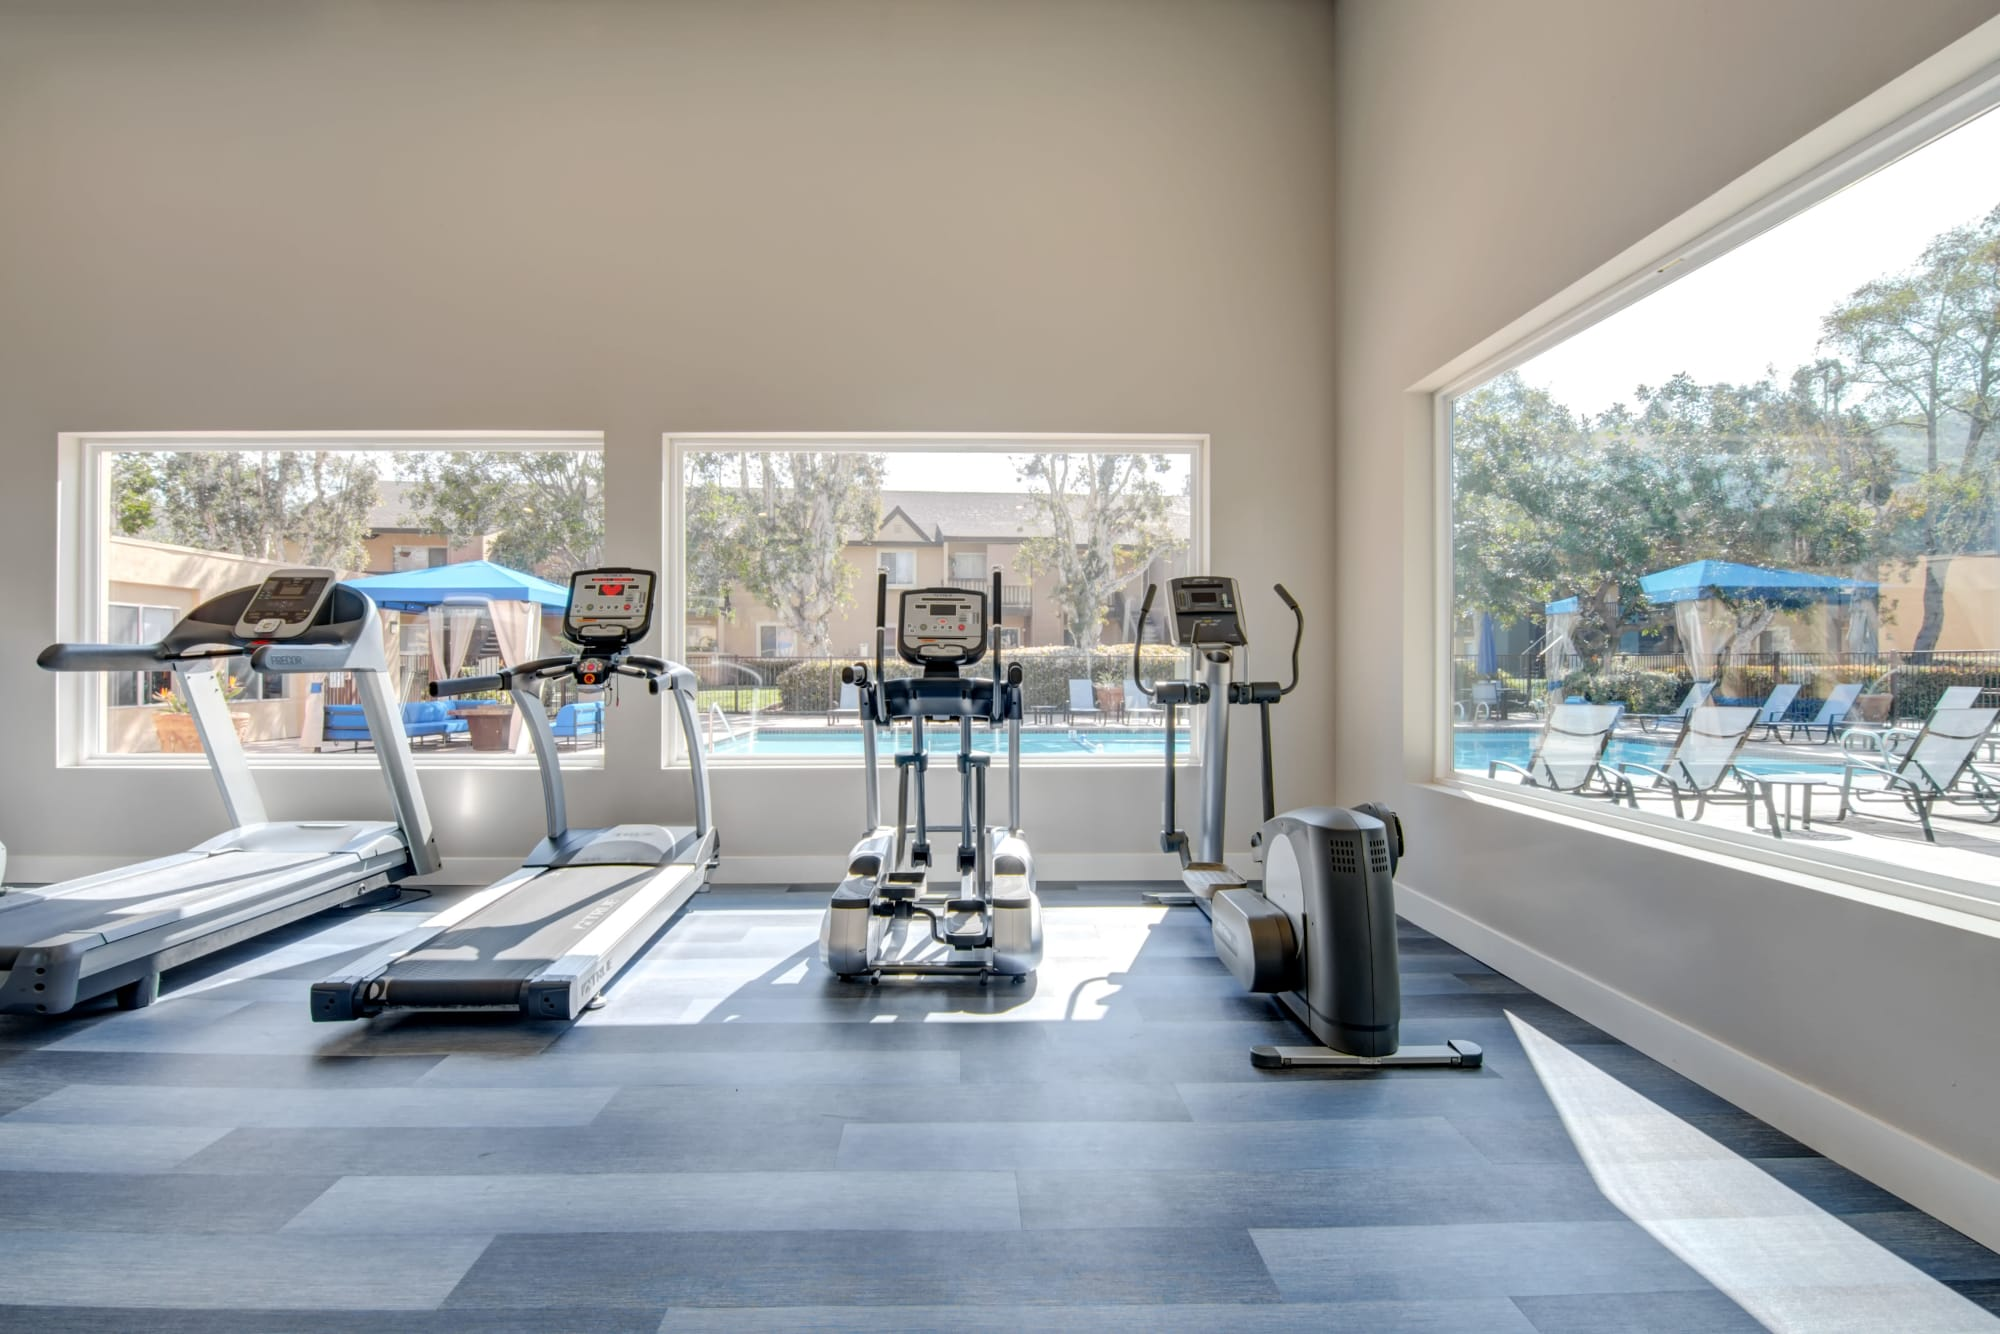 Newly Renovated Fully equipped Fitness Center at Terra Nova Villas in Chula Vista, CA